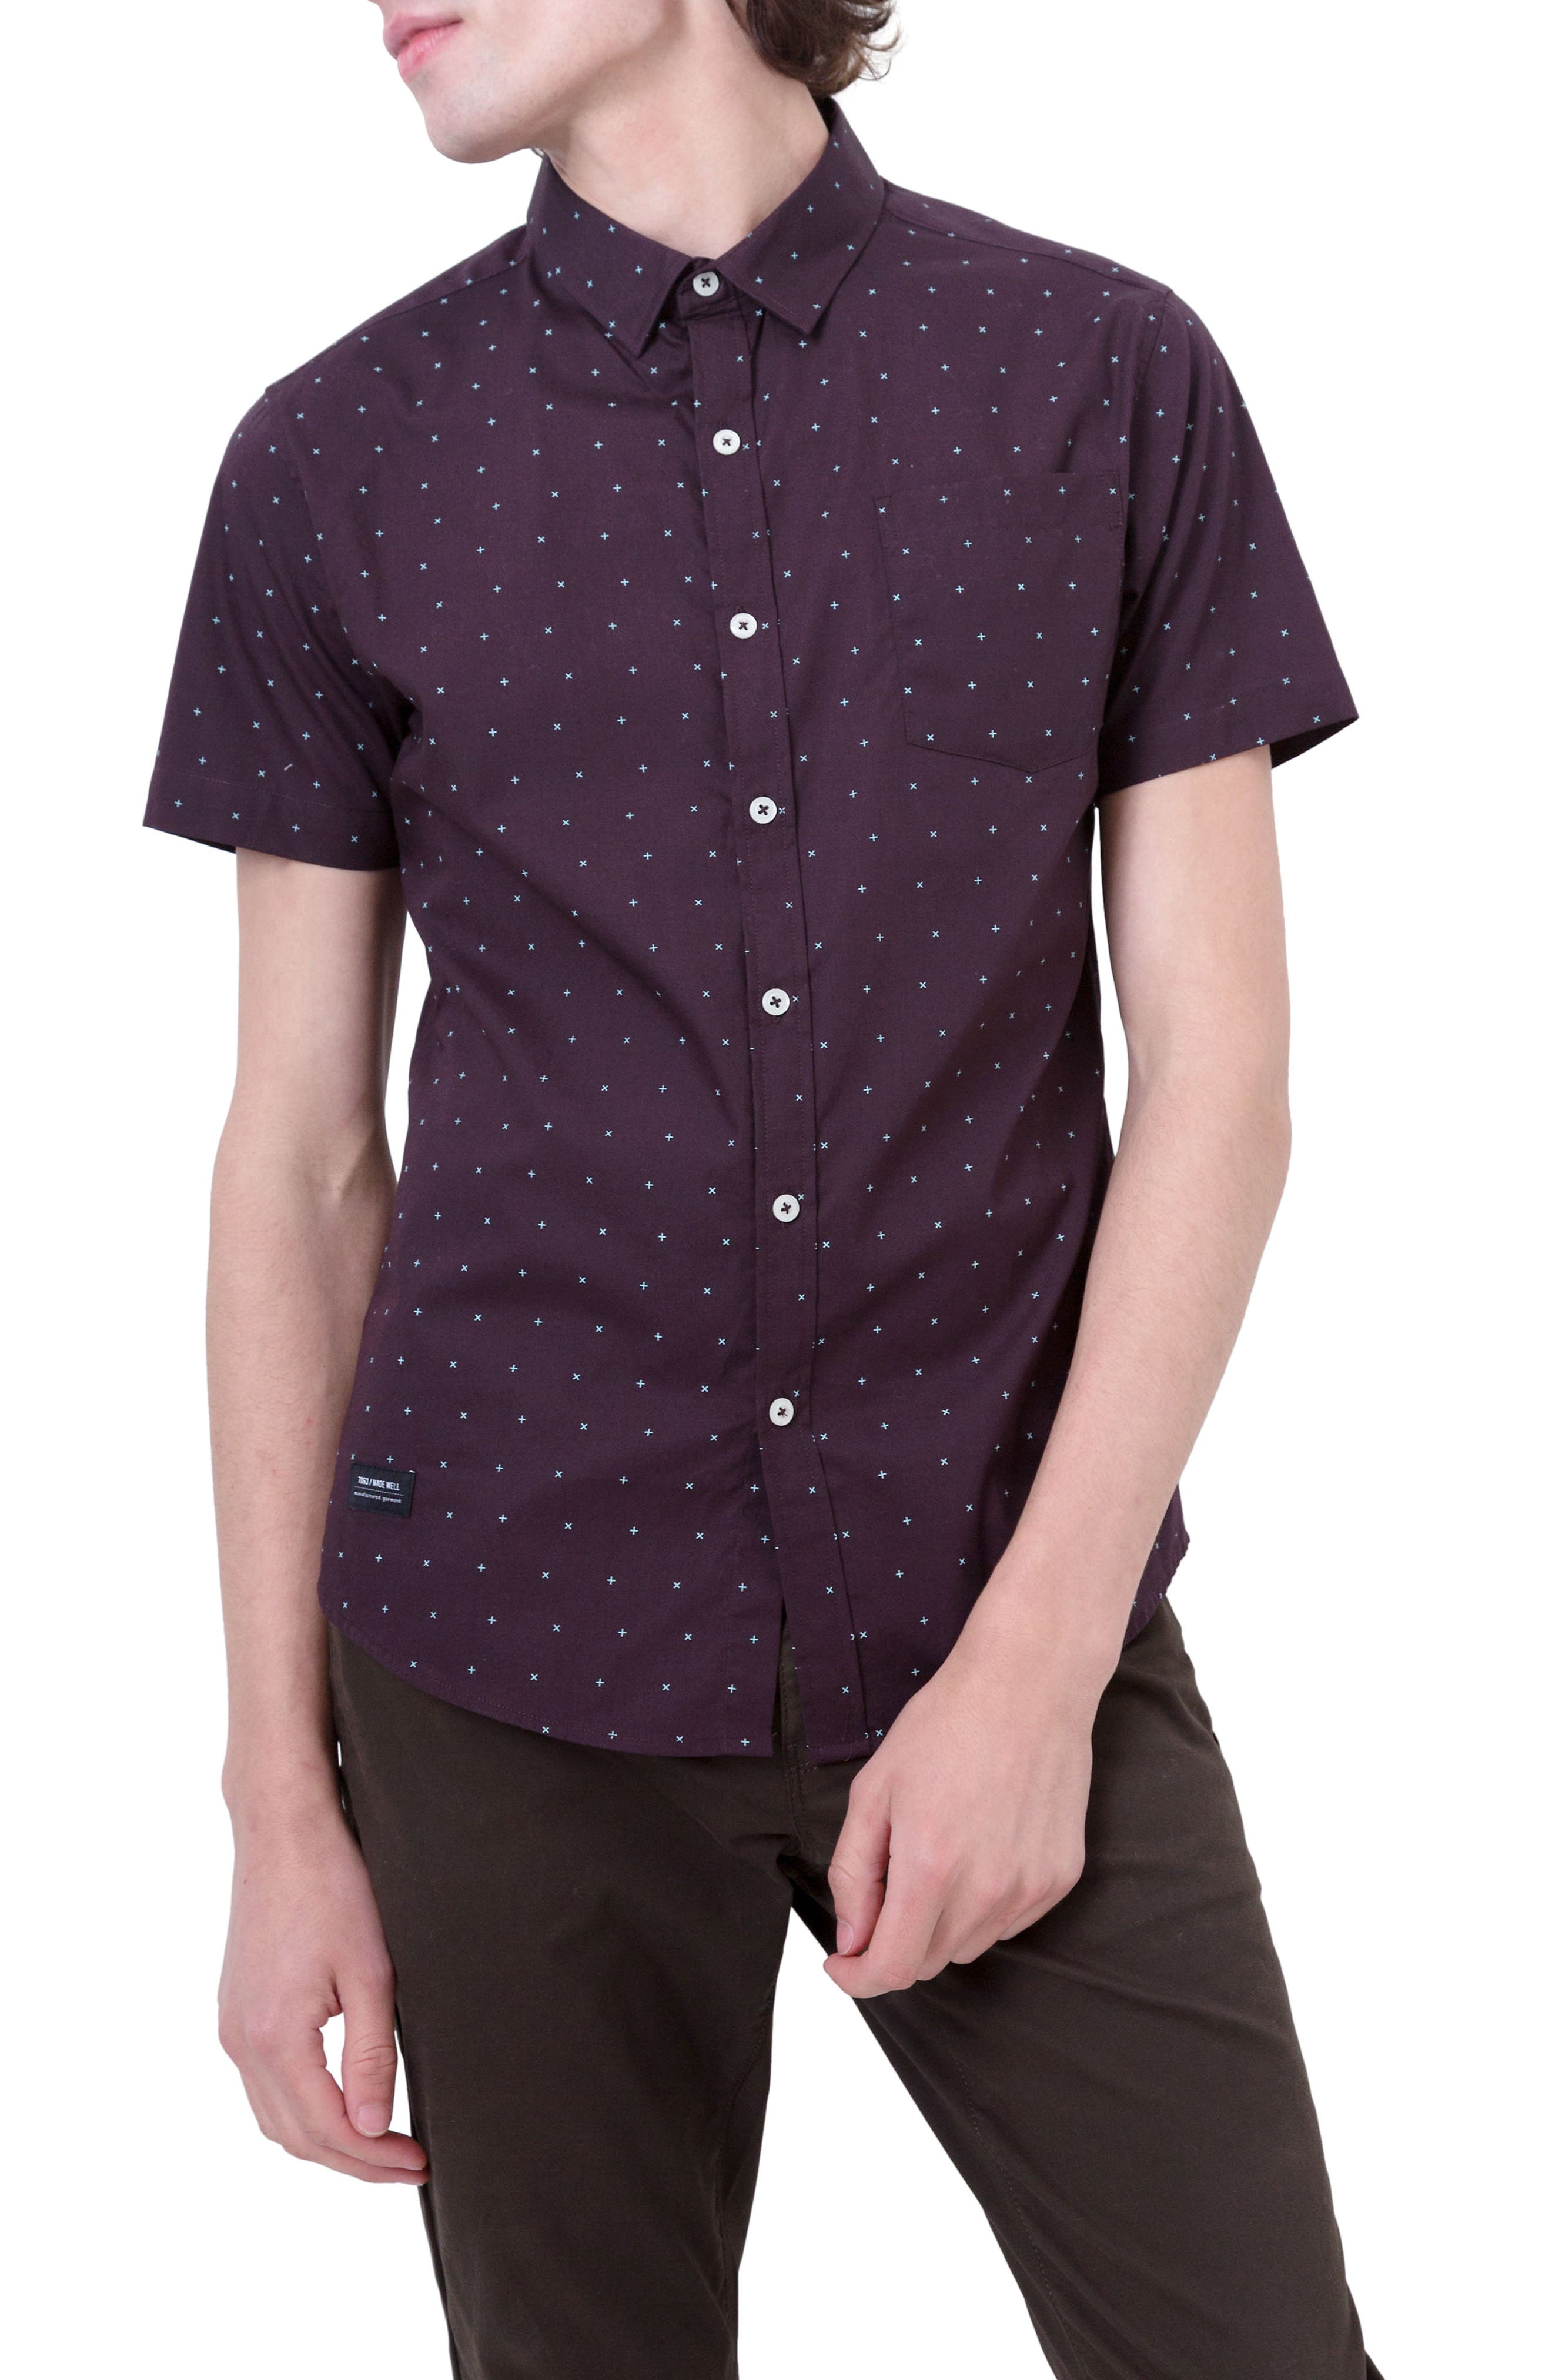 Hit Parade Woven Shirt,                             Main thumbnail 1, color,                             930